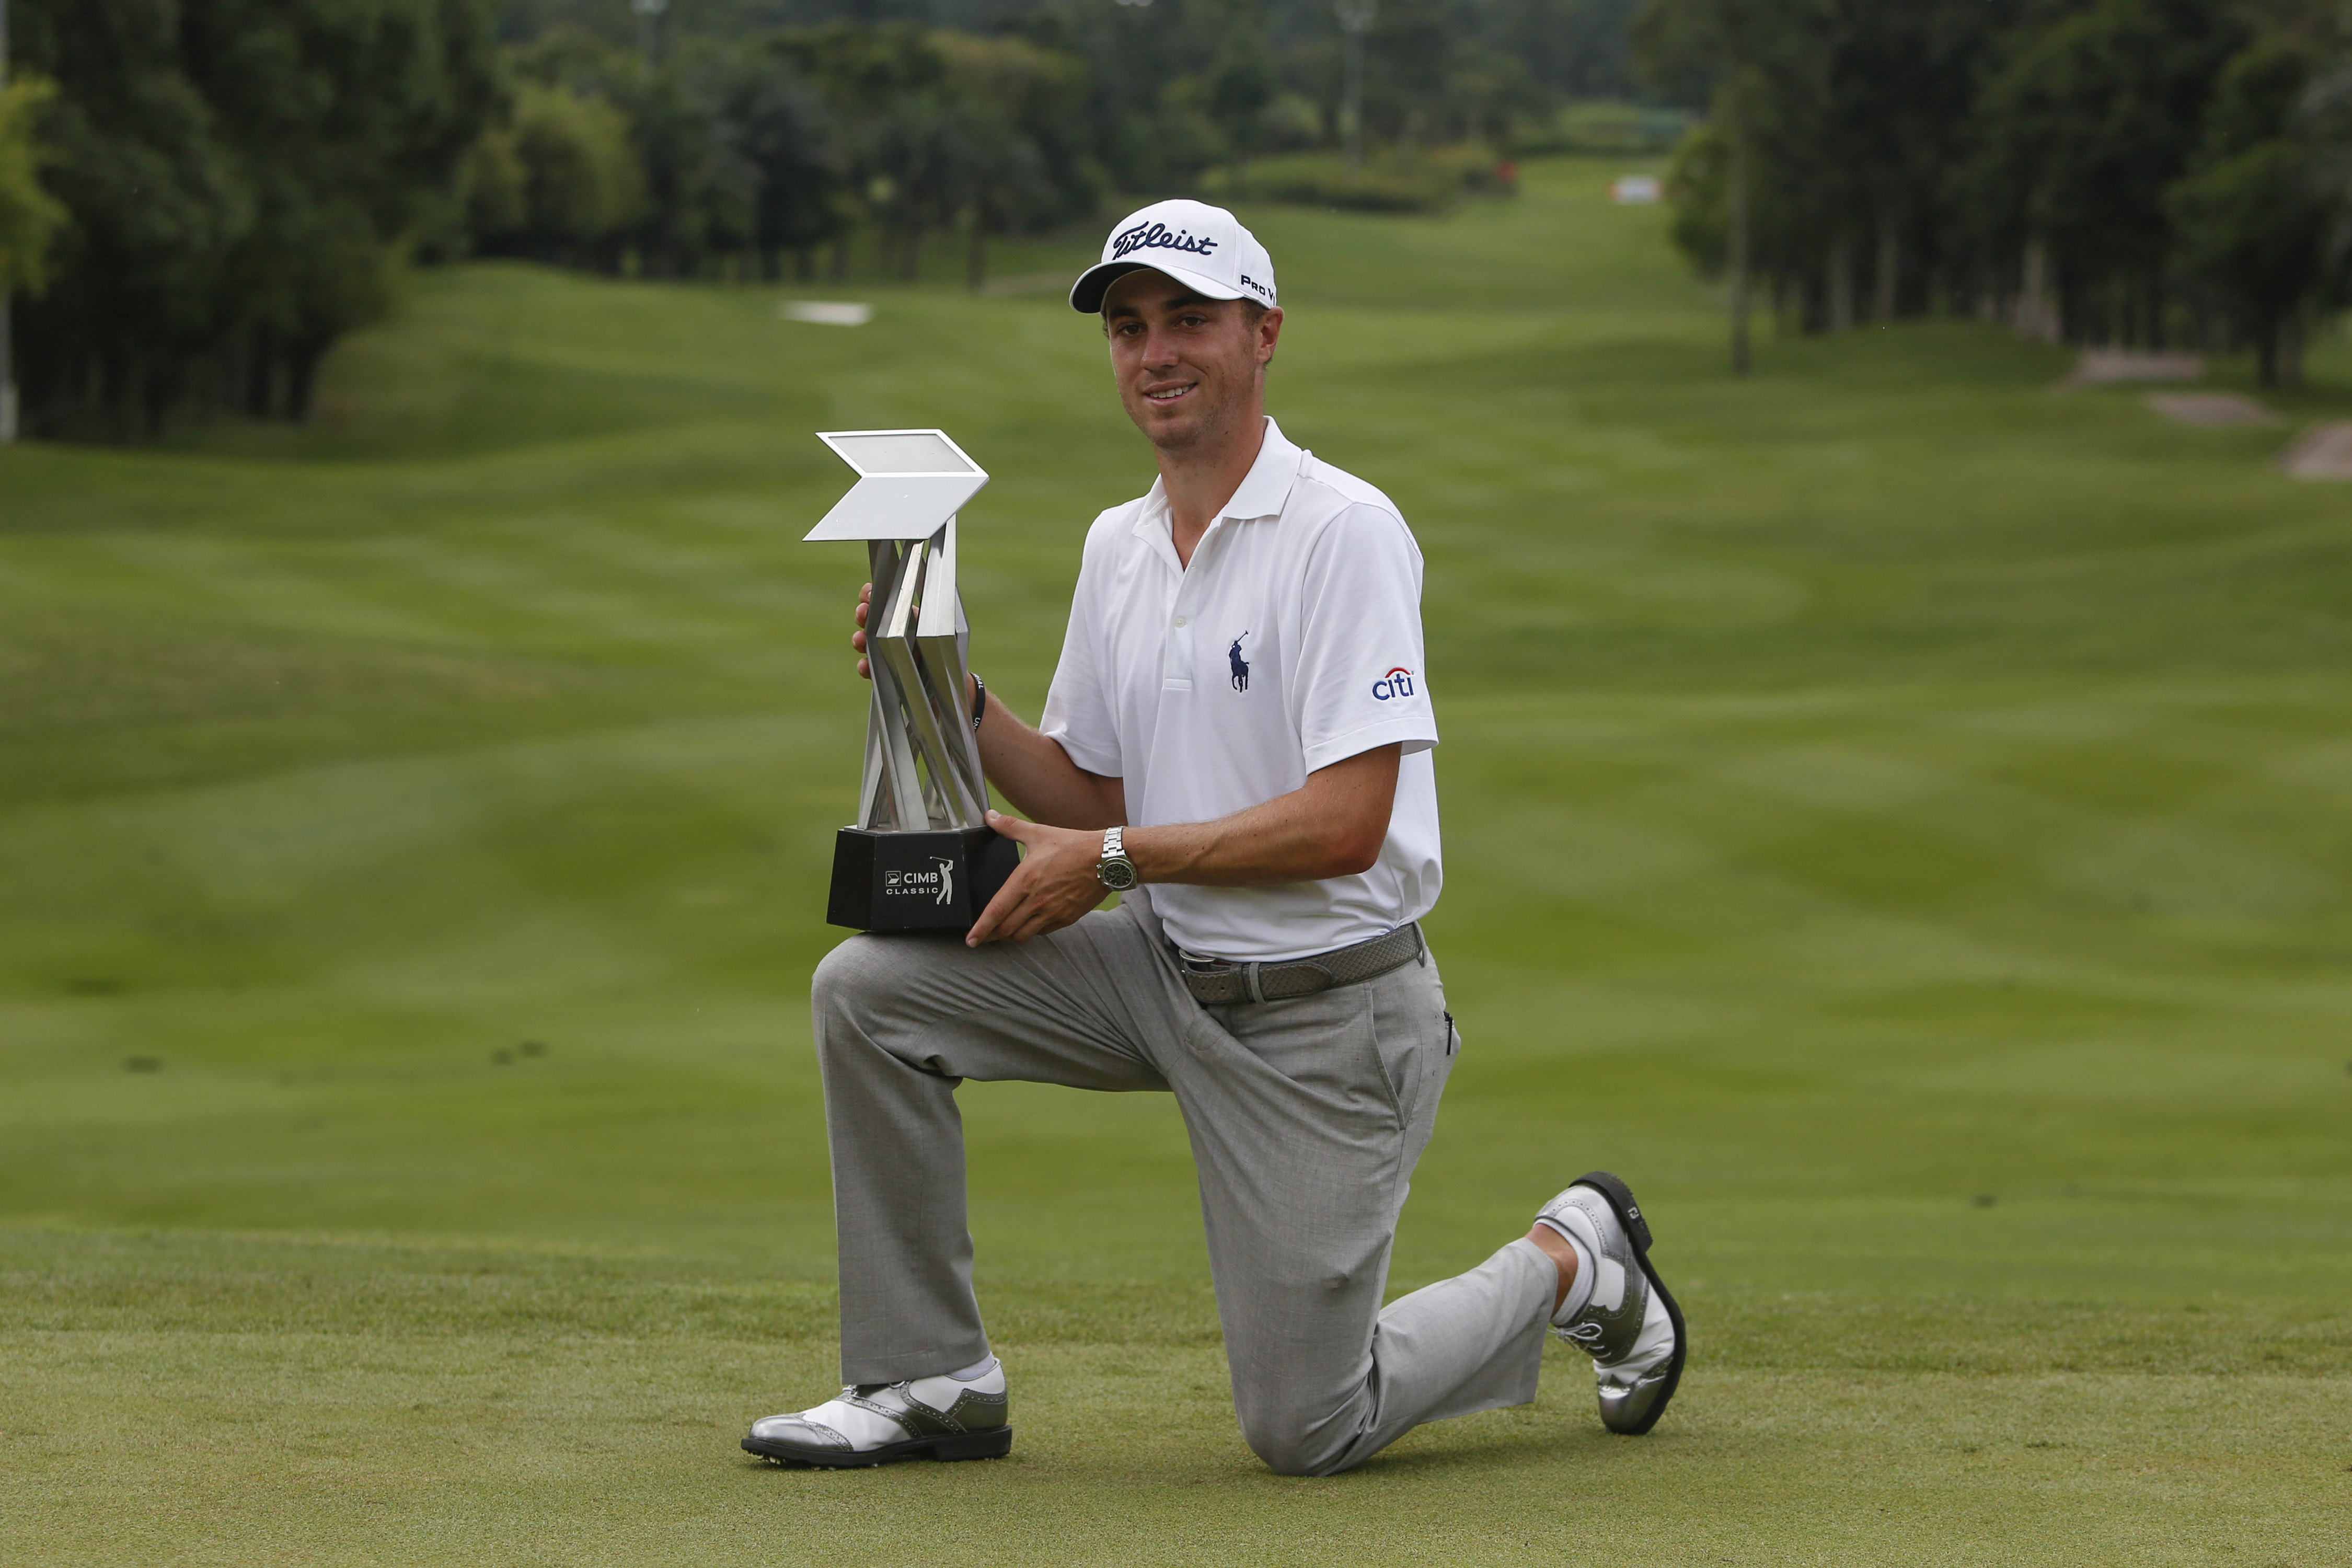 Justin Thomas of the United States poses with his trophy after winning the CIMB Classic golf tournament at Kuala Lumpur Golf and Country Club in Kuala Lumpur, Malaysia, Sunday, Nov. 1, 2015. (AP Photo/Joshua Paul)